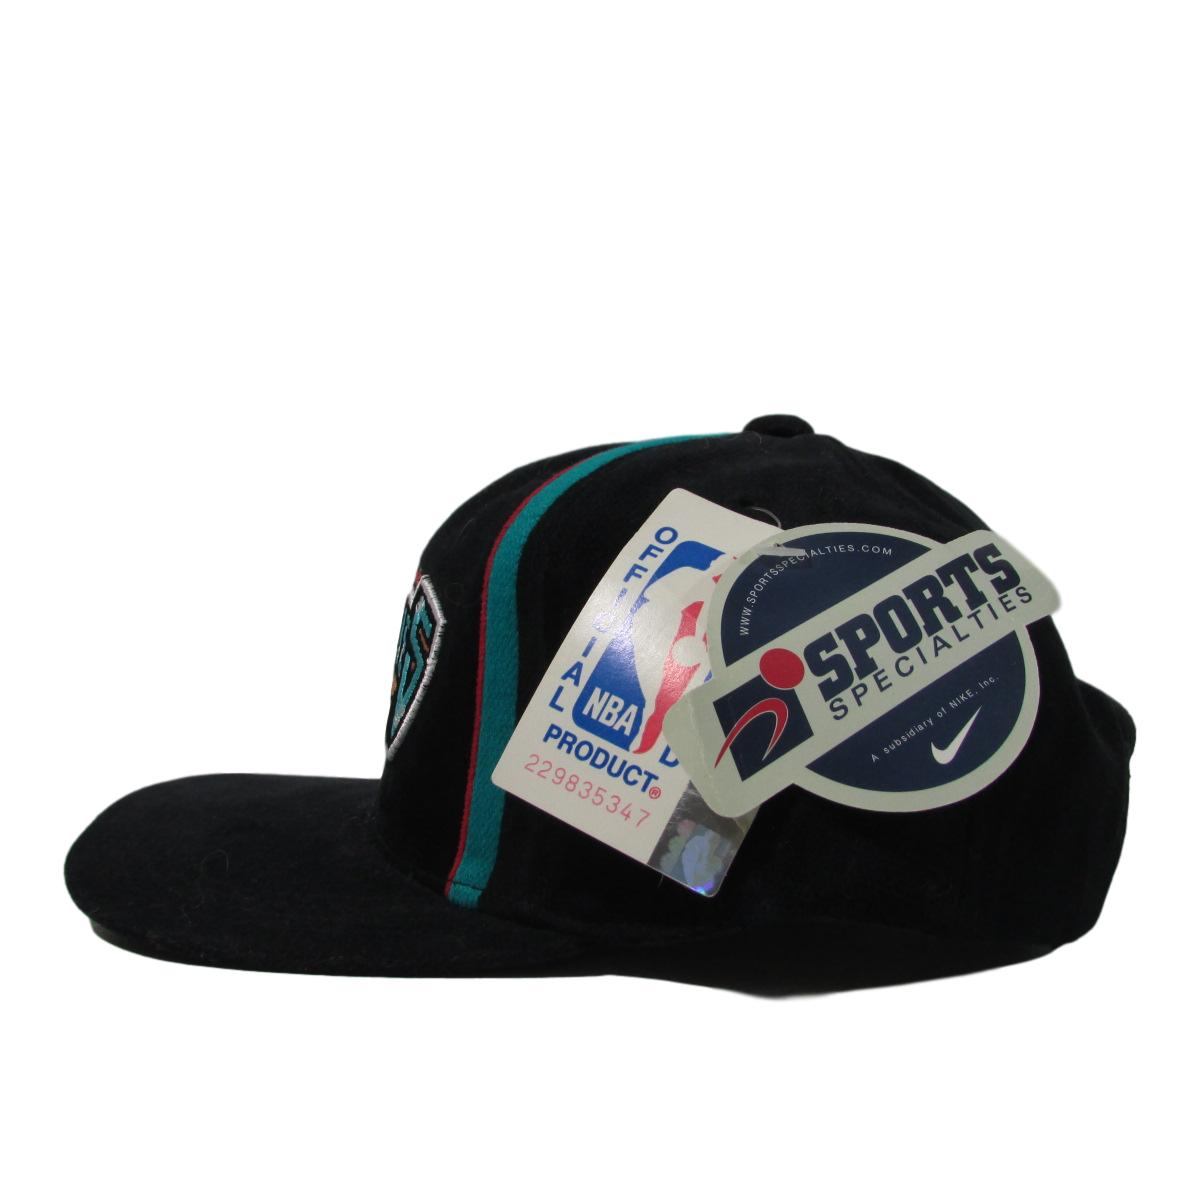 Vancouver Grizzlies Deadstock Snapback Hat Sports Specialties